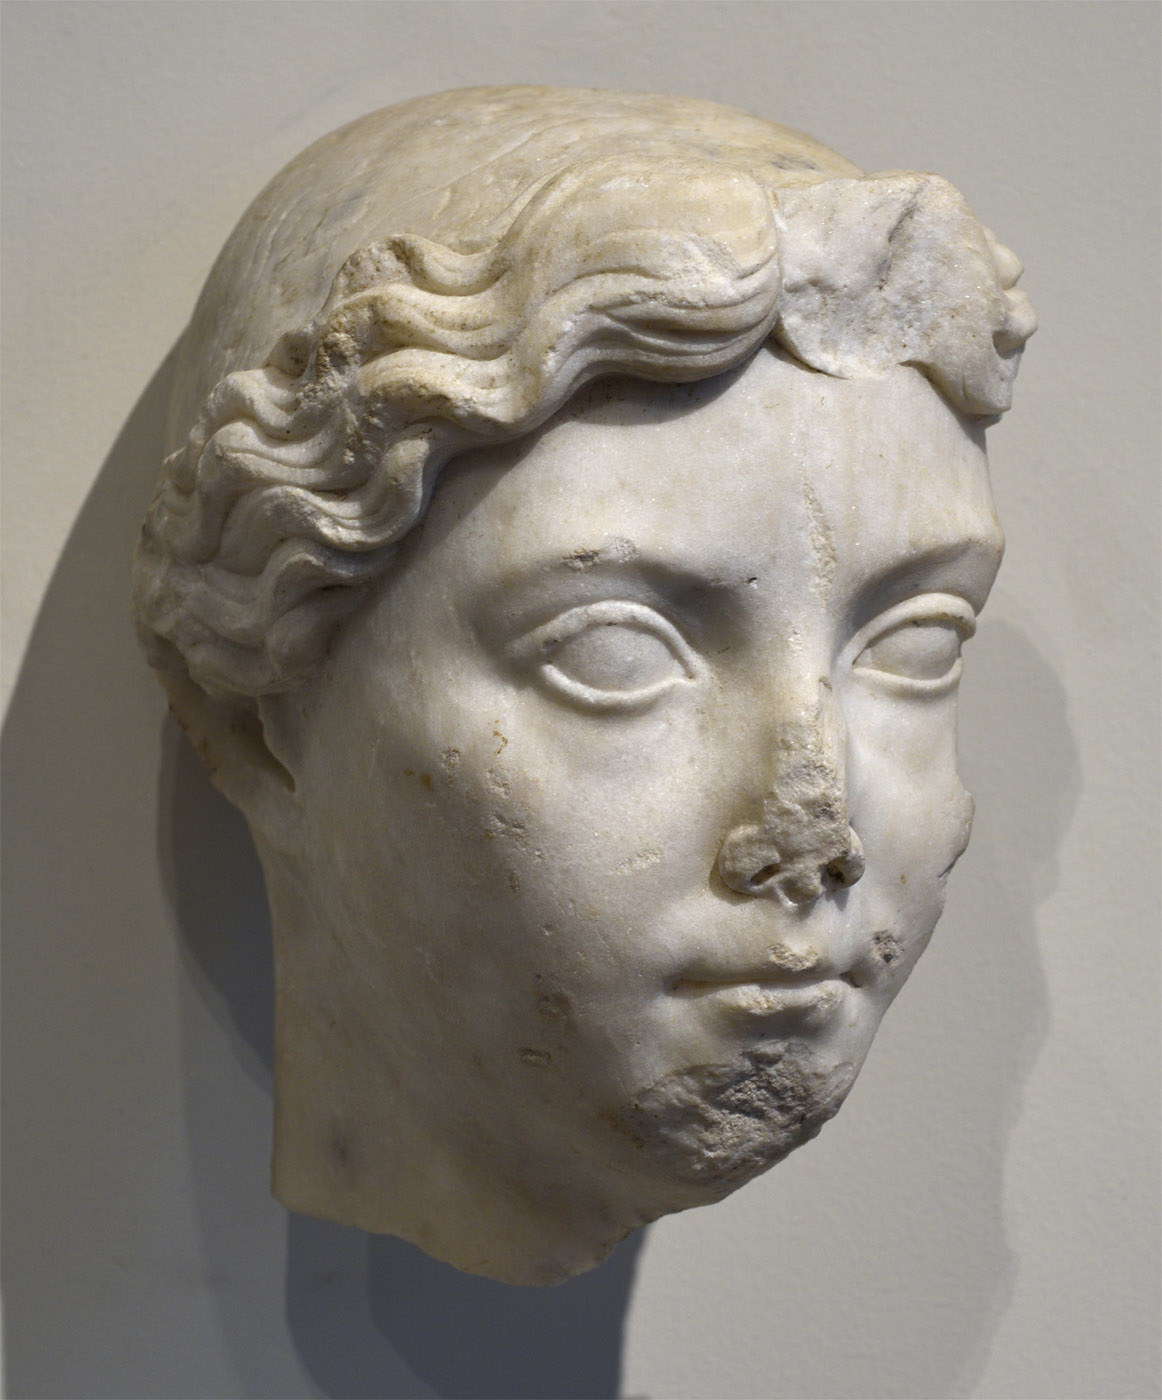 Head of Livia. Marble. Tiberian age (14—37 CE). Inv. No. 18.145.45. New York, the Metropolitan Museum of Art